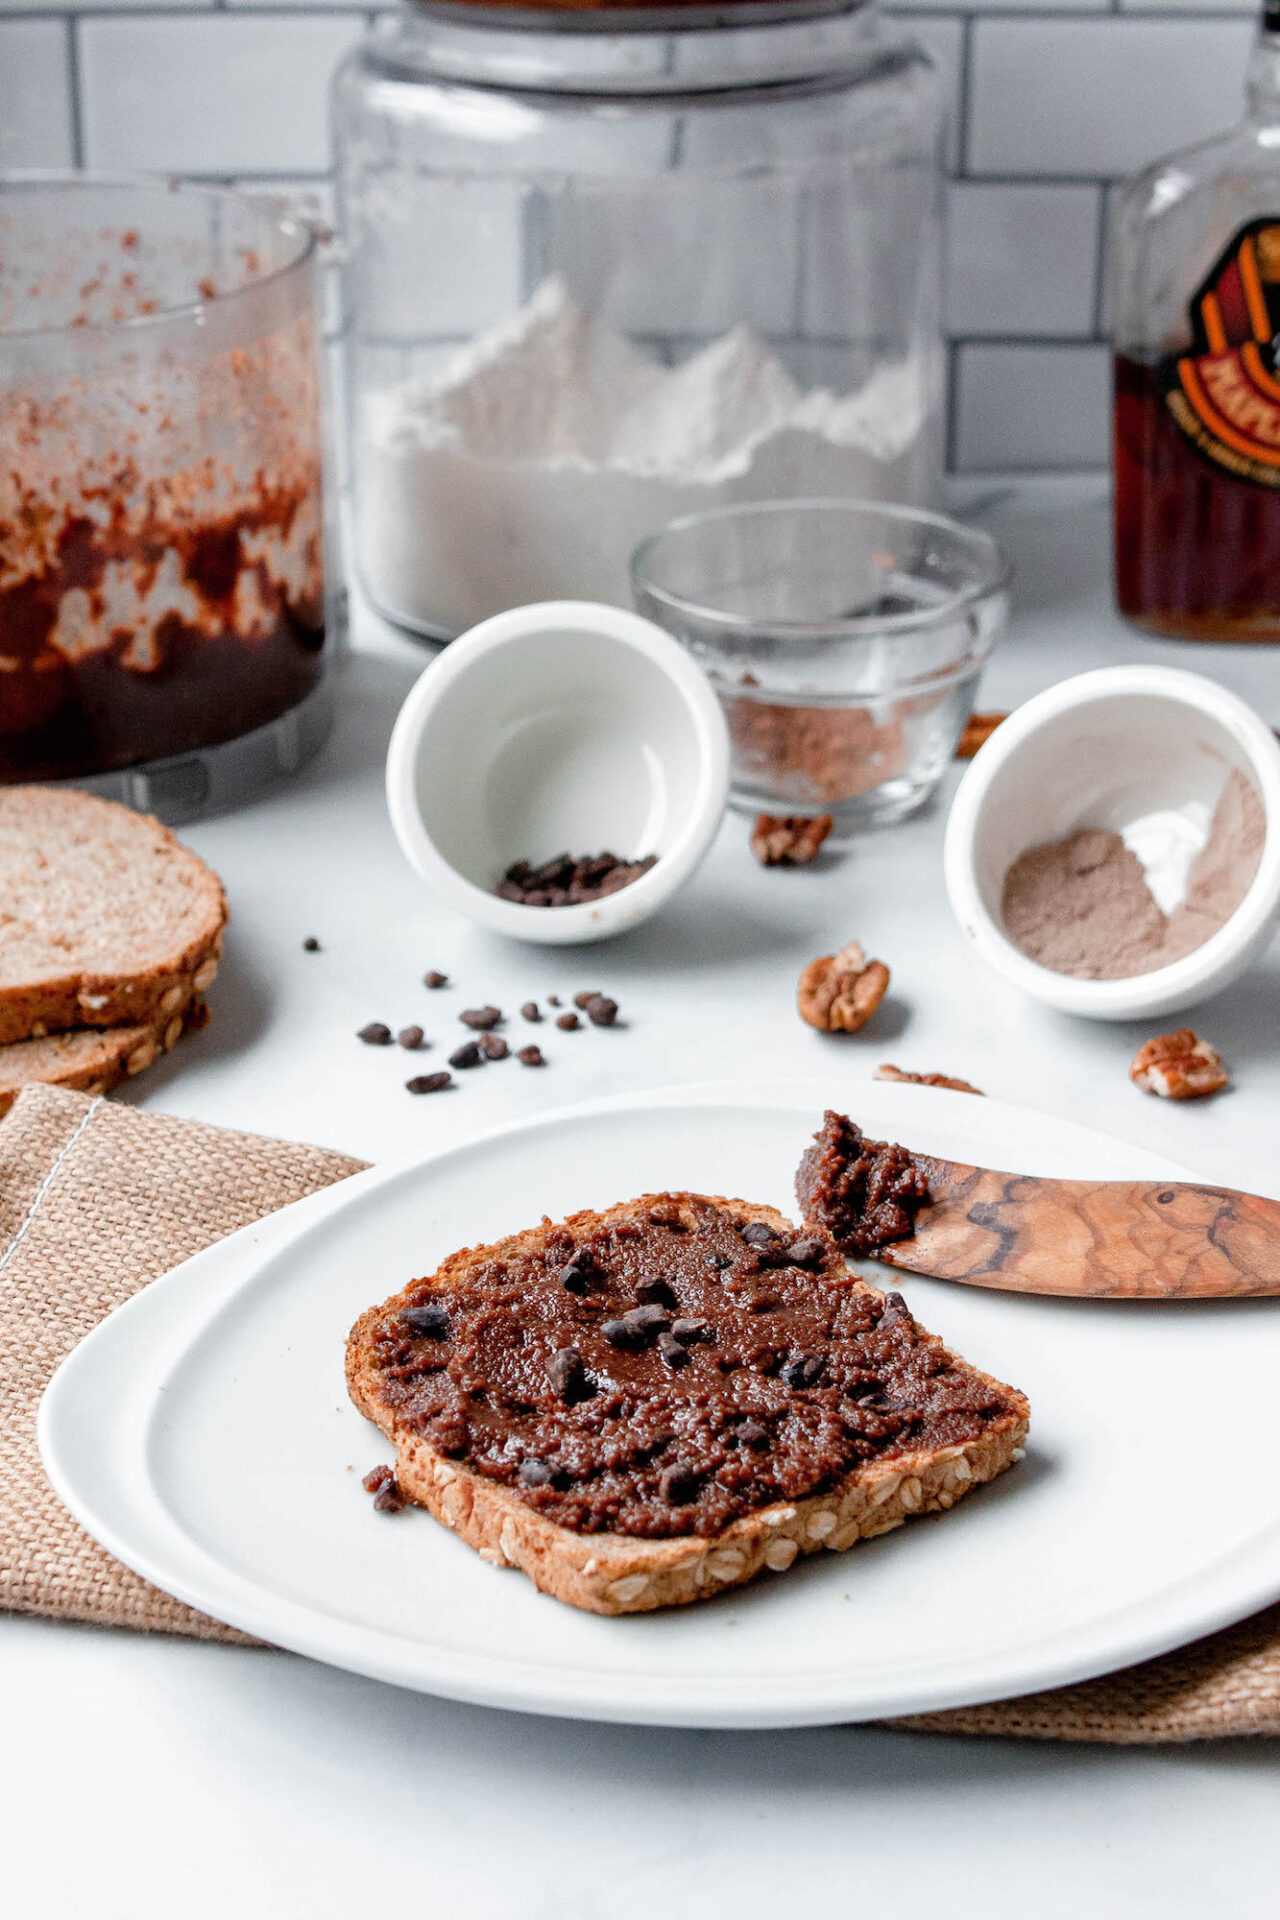 triple chocolate pecan butter vertical image on counter with toast   flexatarian recipe